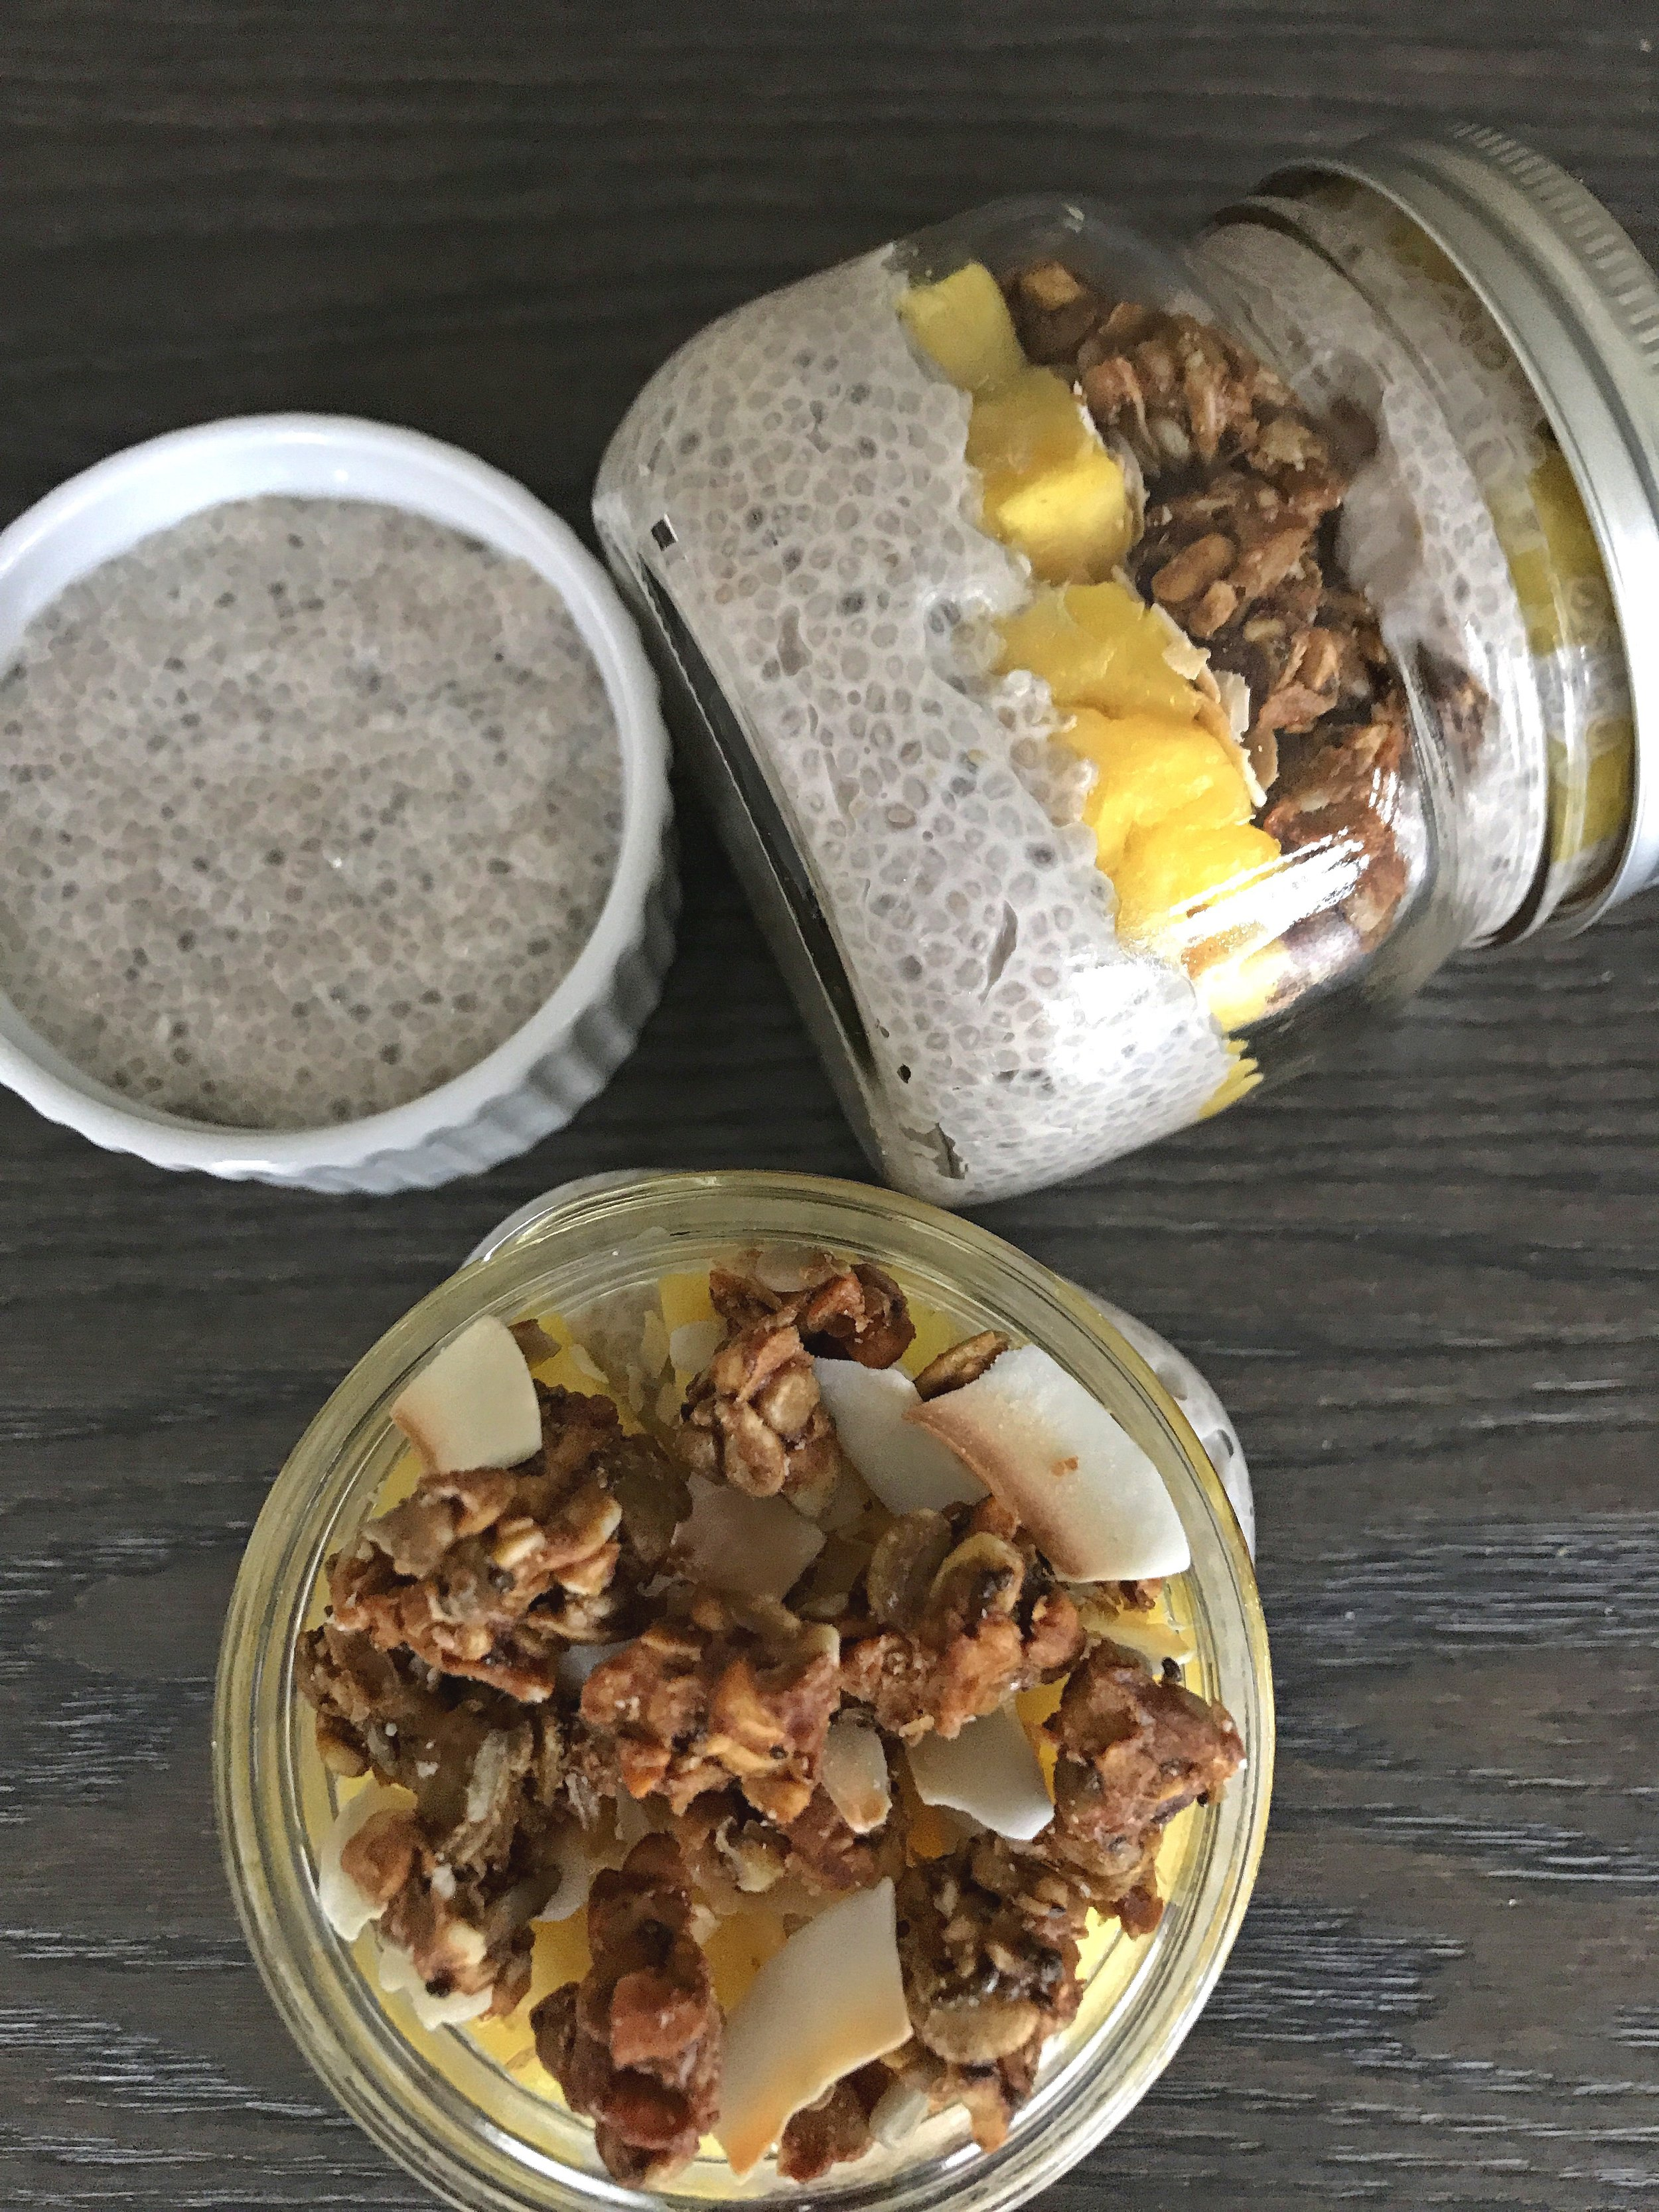 Packed as portable breakfast parfaits